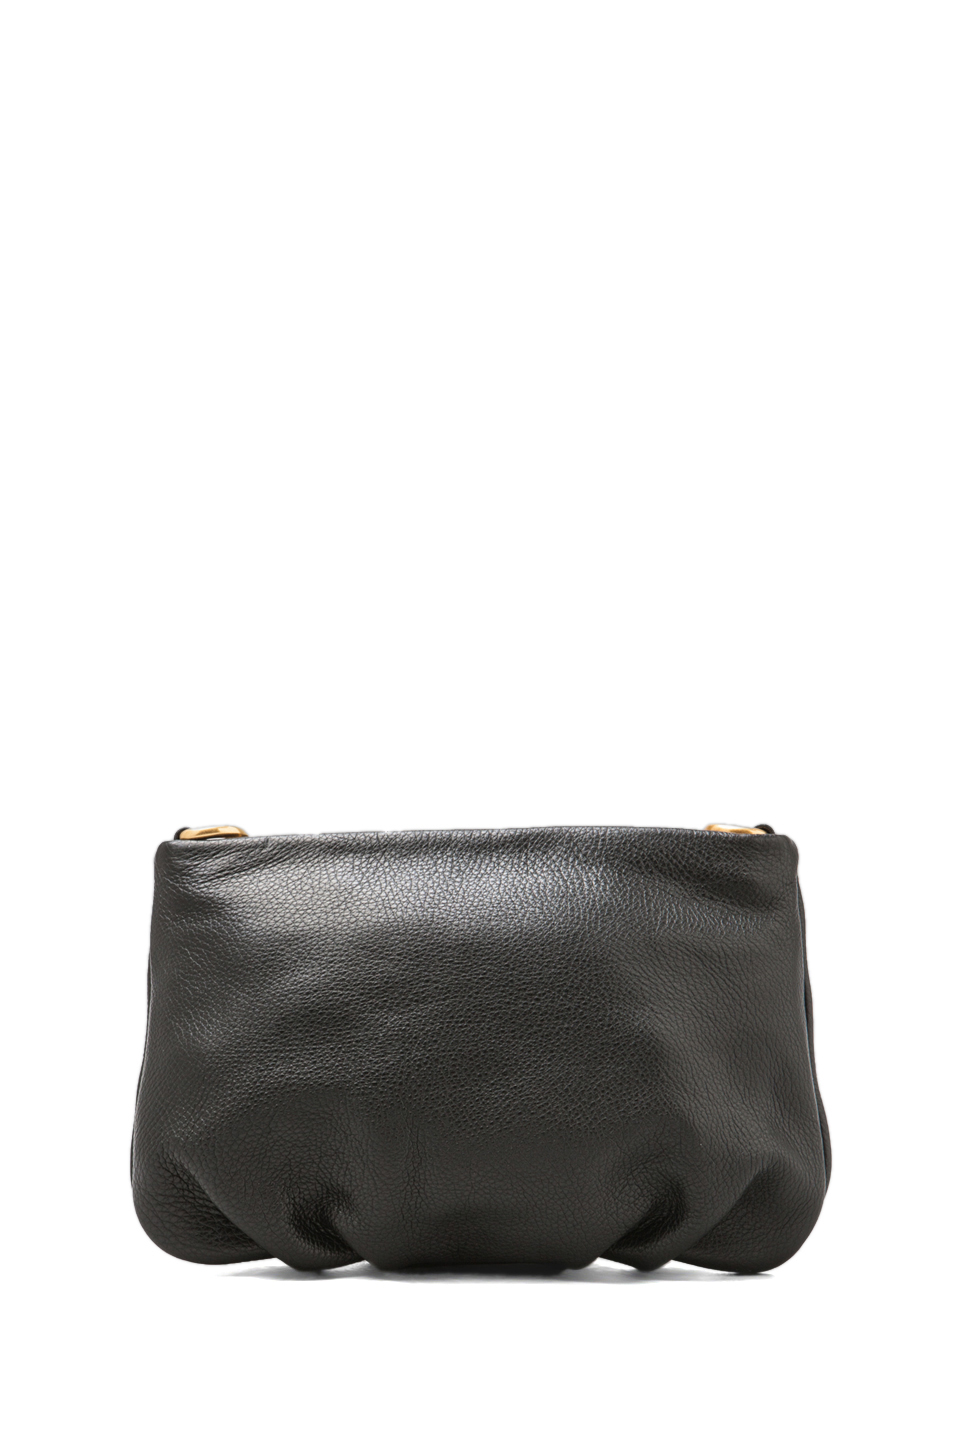 Marc by Marc Jacobs Classic Q Percy in Black